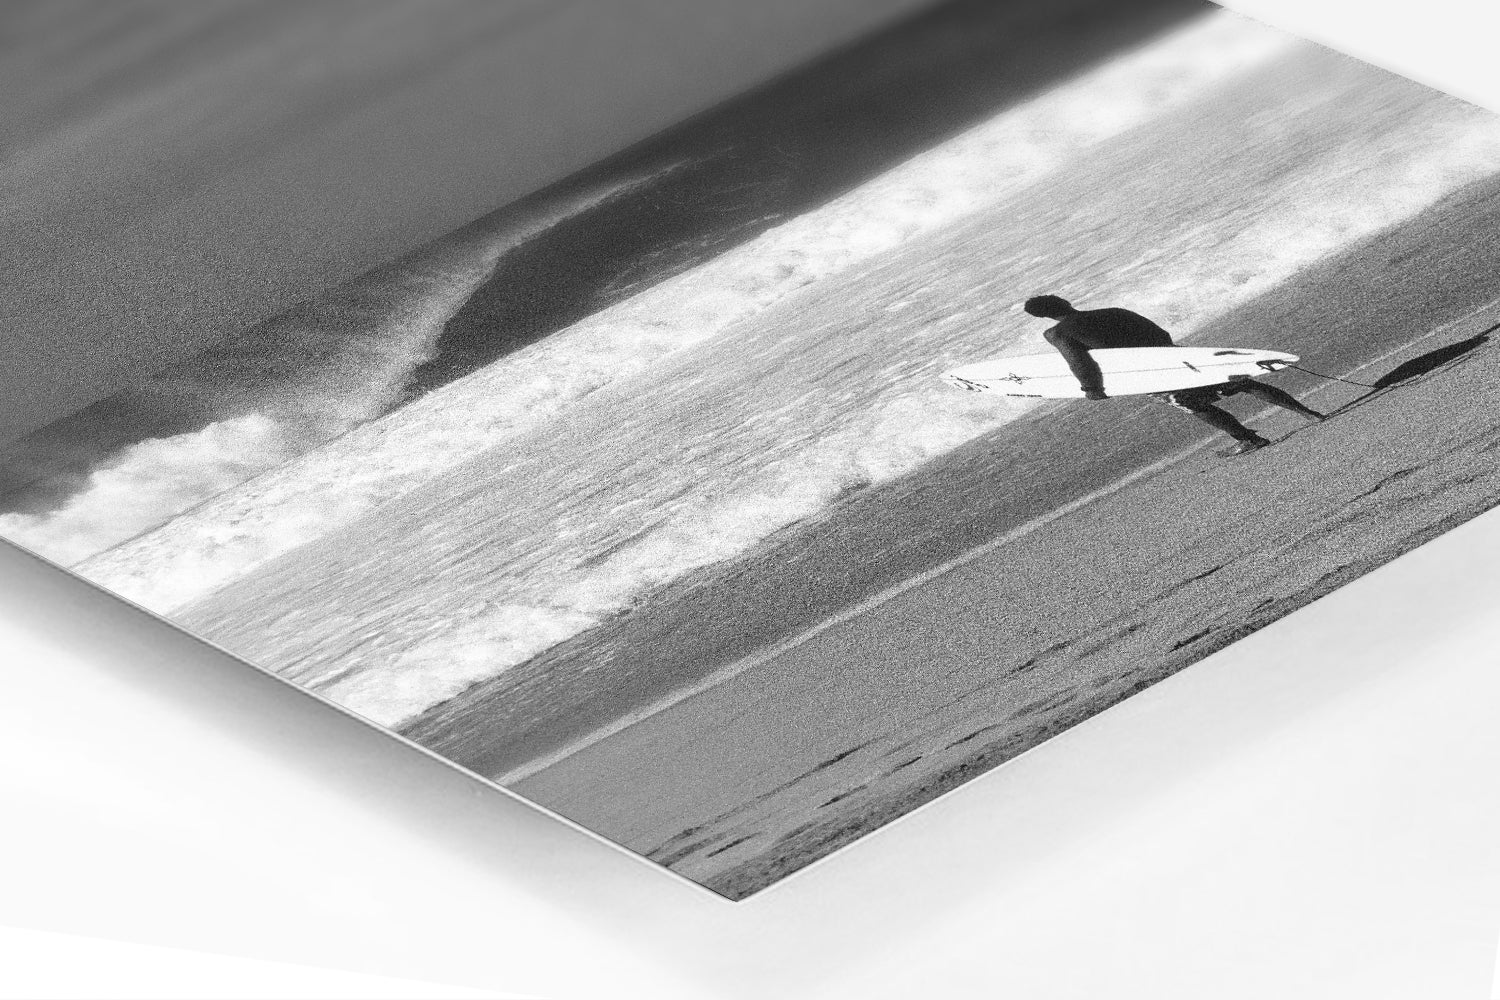 Under Pressure surfing metal prints available of a surfer holding a surfboard on the North Shore of Oahu in Hawaii at Pipeline.